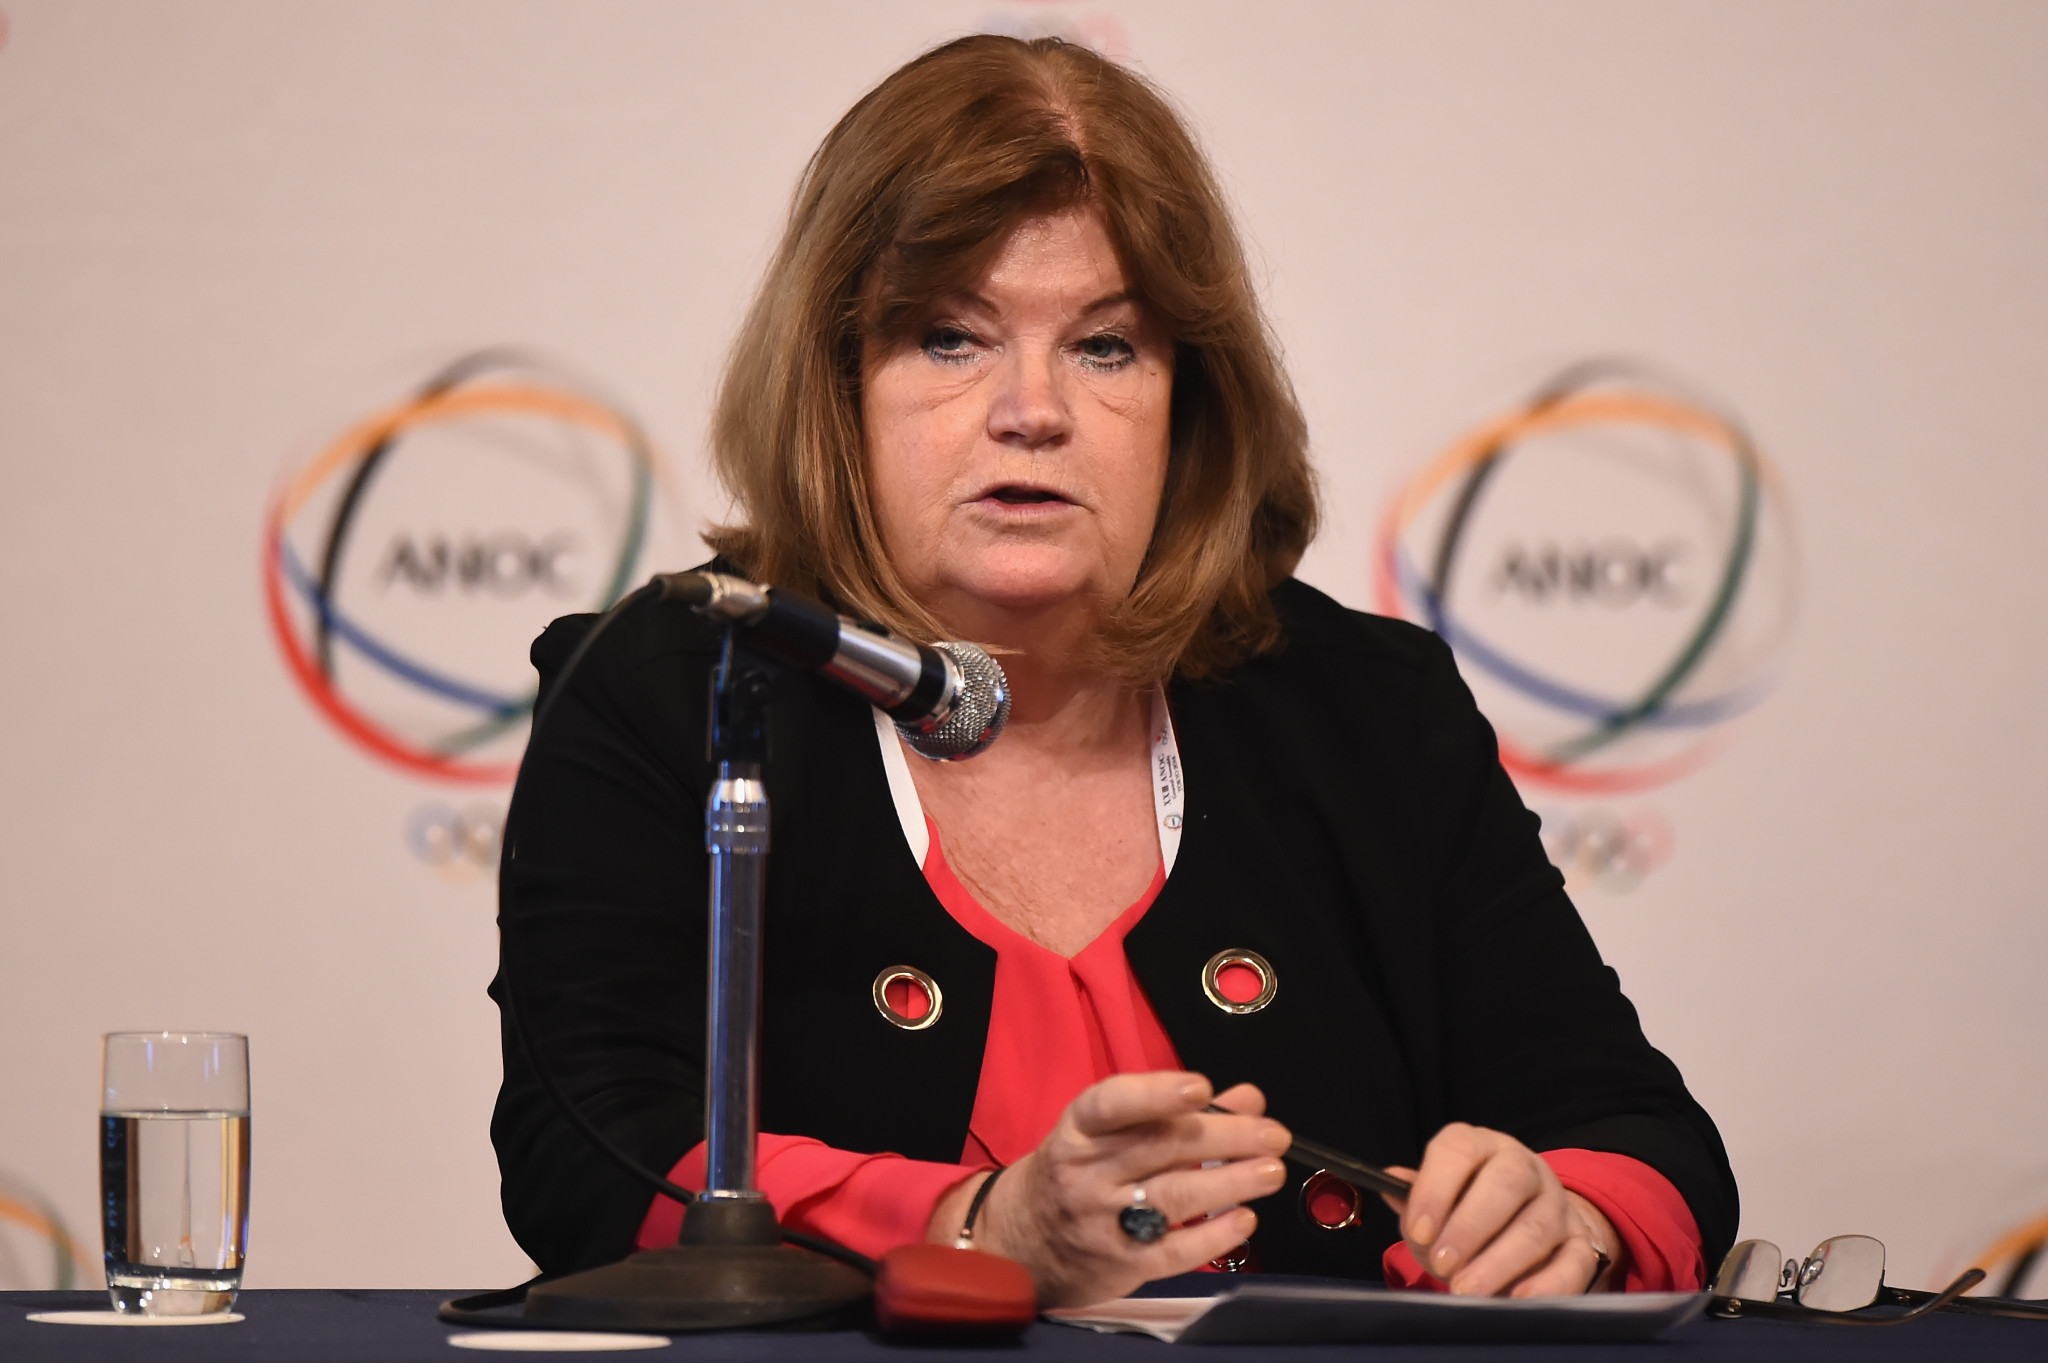 Gunilla Lindberg is the secretary general of the Association of National Olympic Committees ©Getty Images